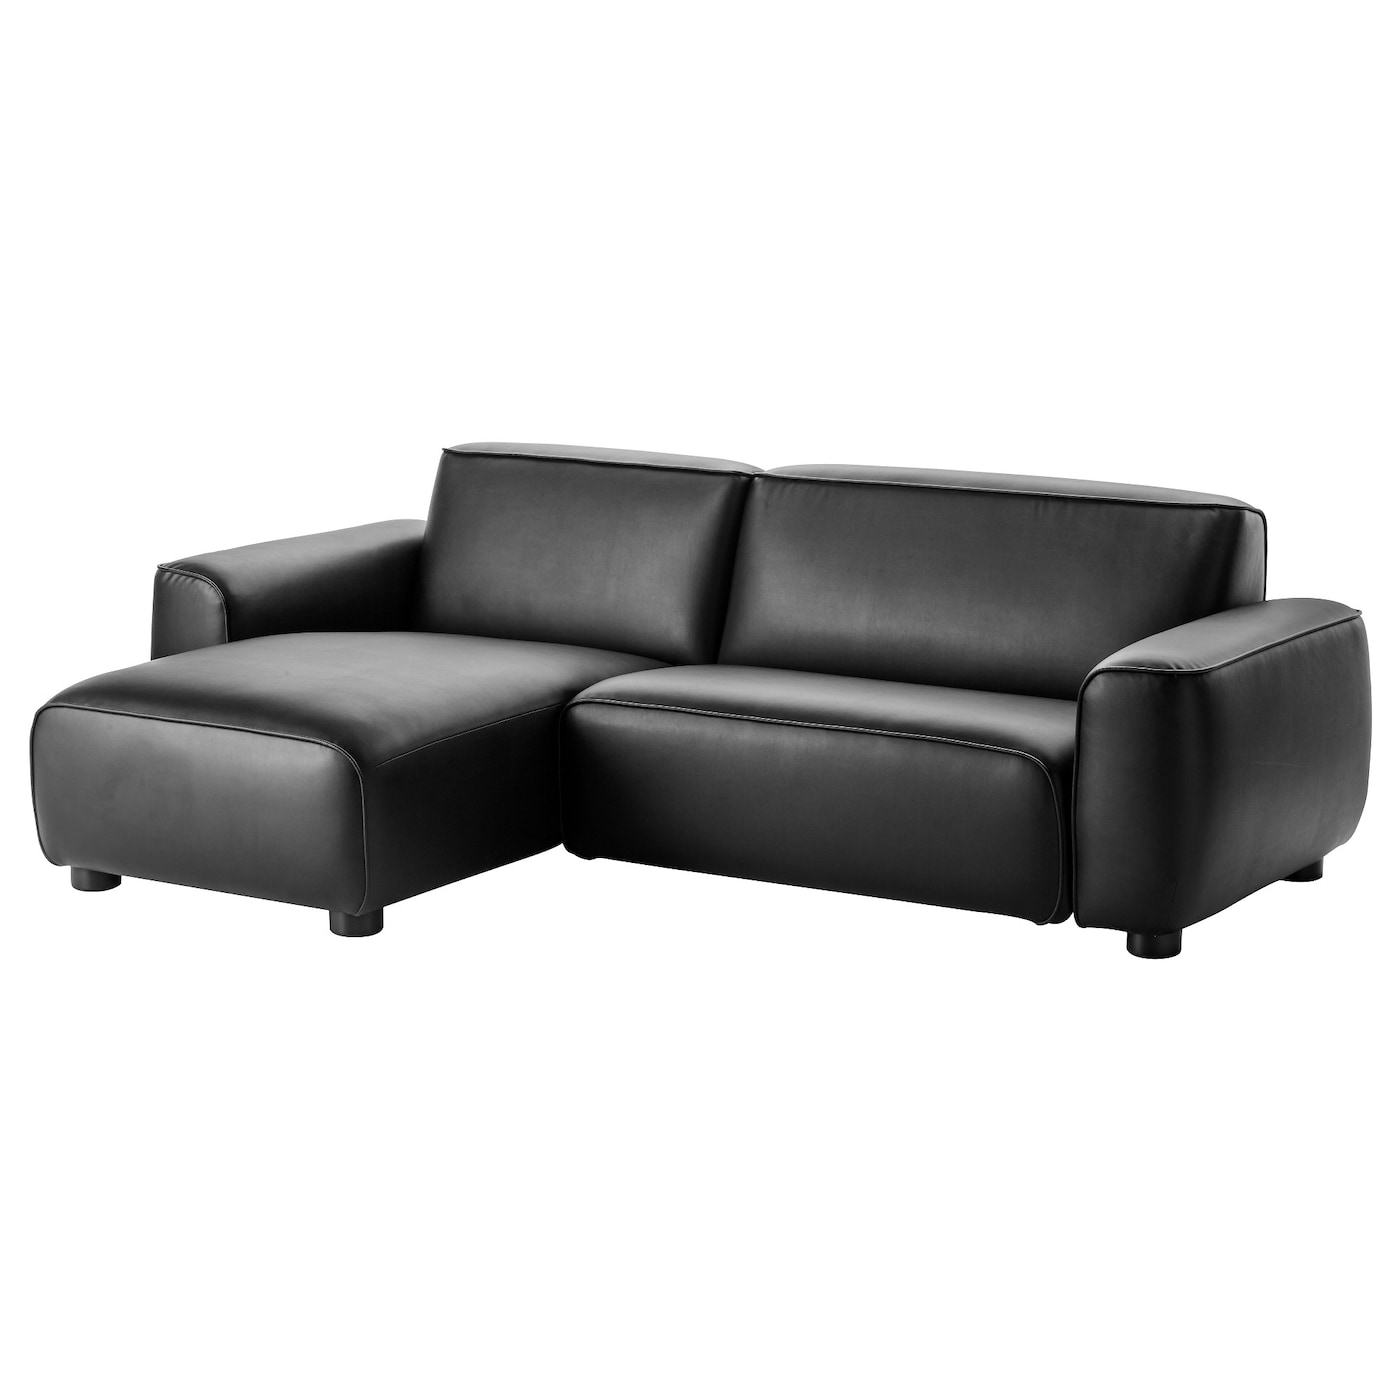 kunstlededersofa dagarn mit recamiere von ikea nur 699 00 cherry m bel. Black Bedroom Furniture Sets. Home Design Ideas